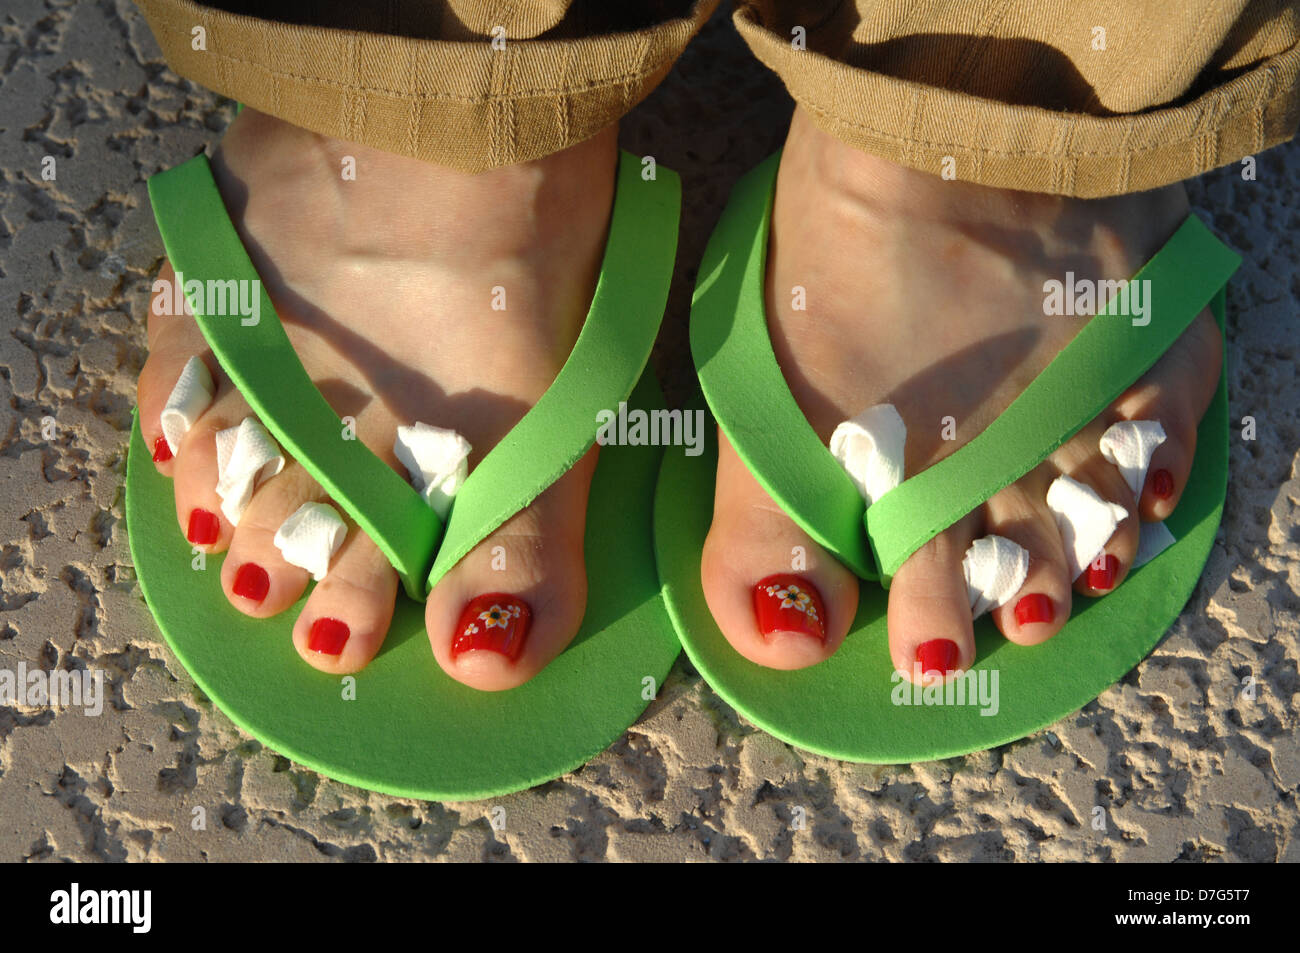 916393a7f45b Stock Image of Feet After a Pedicure With Fresh Polish and Tissue Between  the Toes Wearing